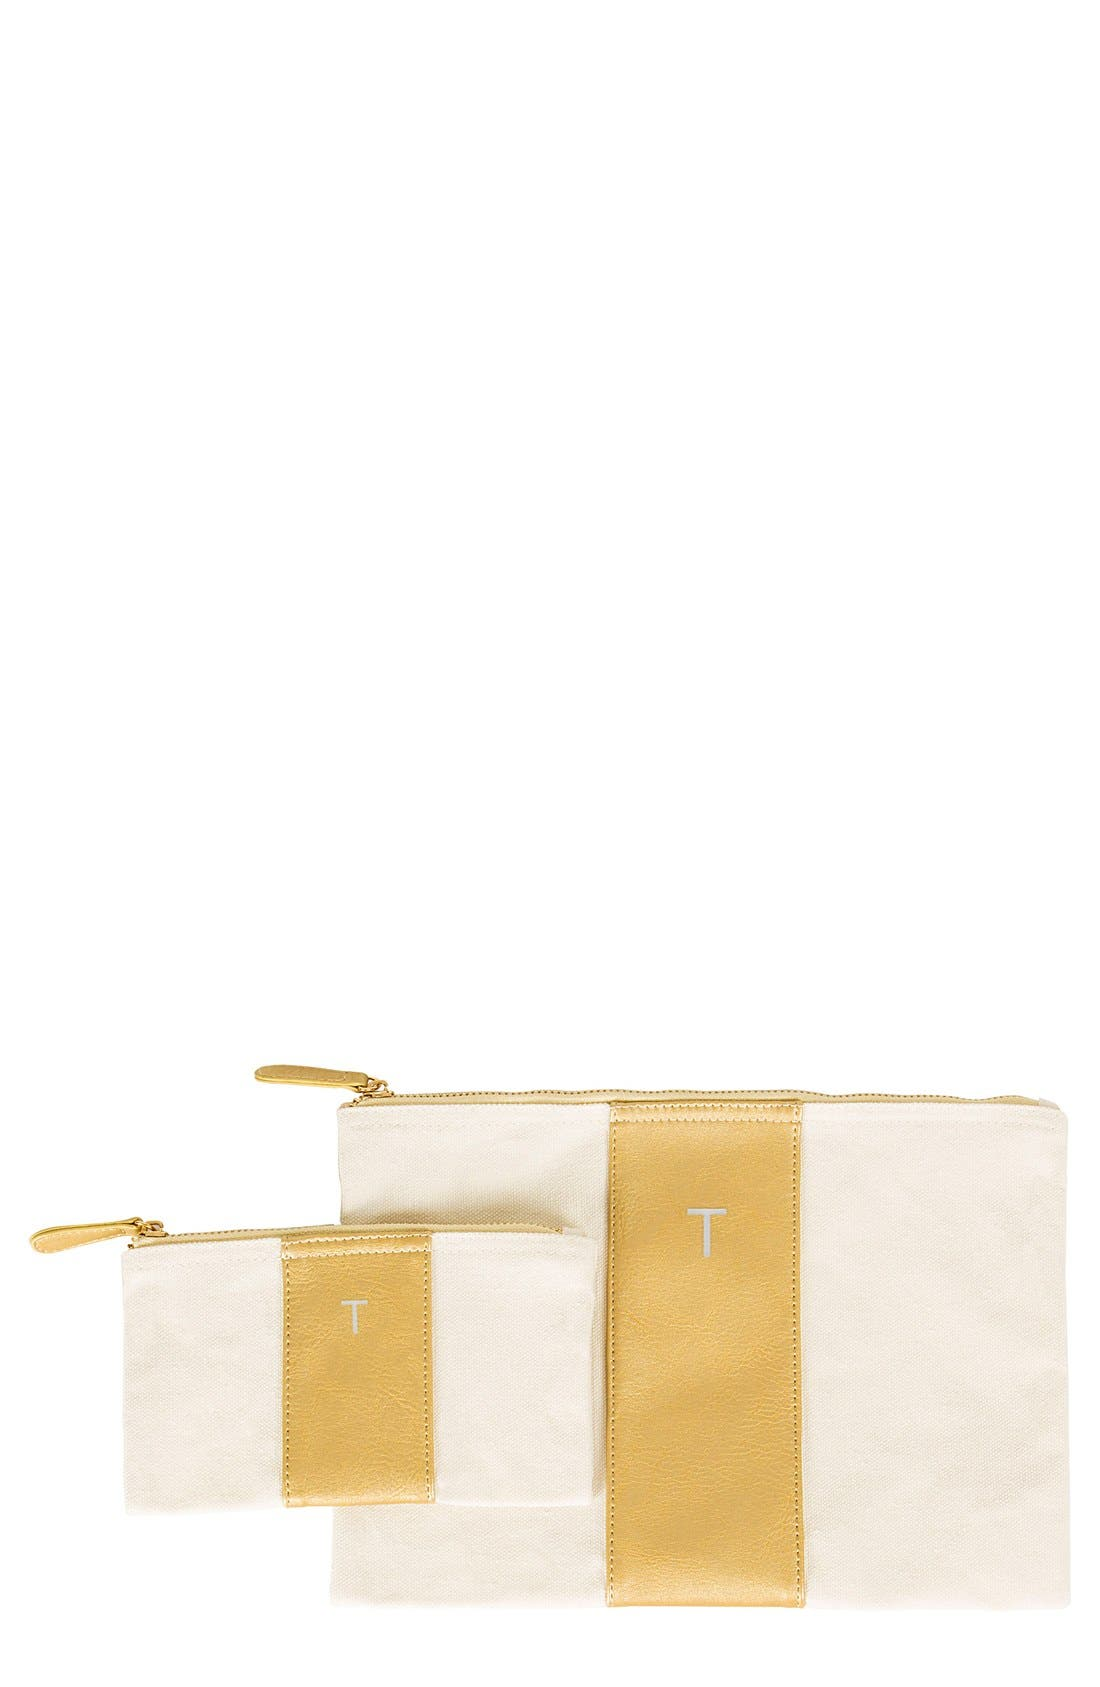 Personalized Faux Leather Clutch,                             Main thumbnail 48, color,